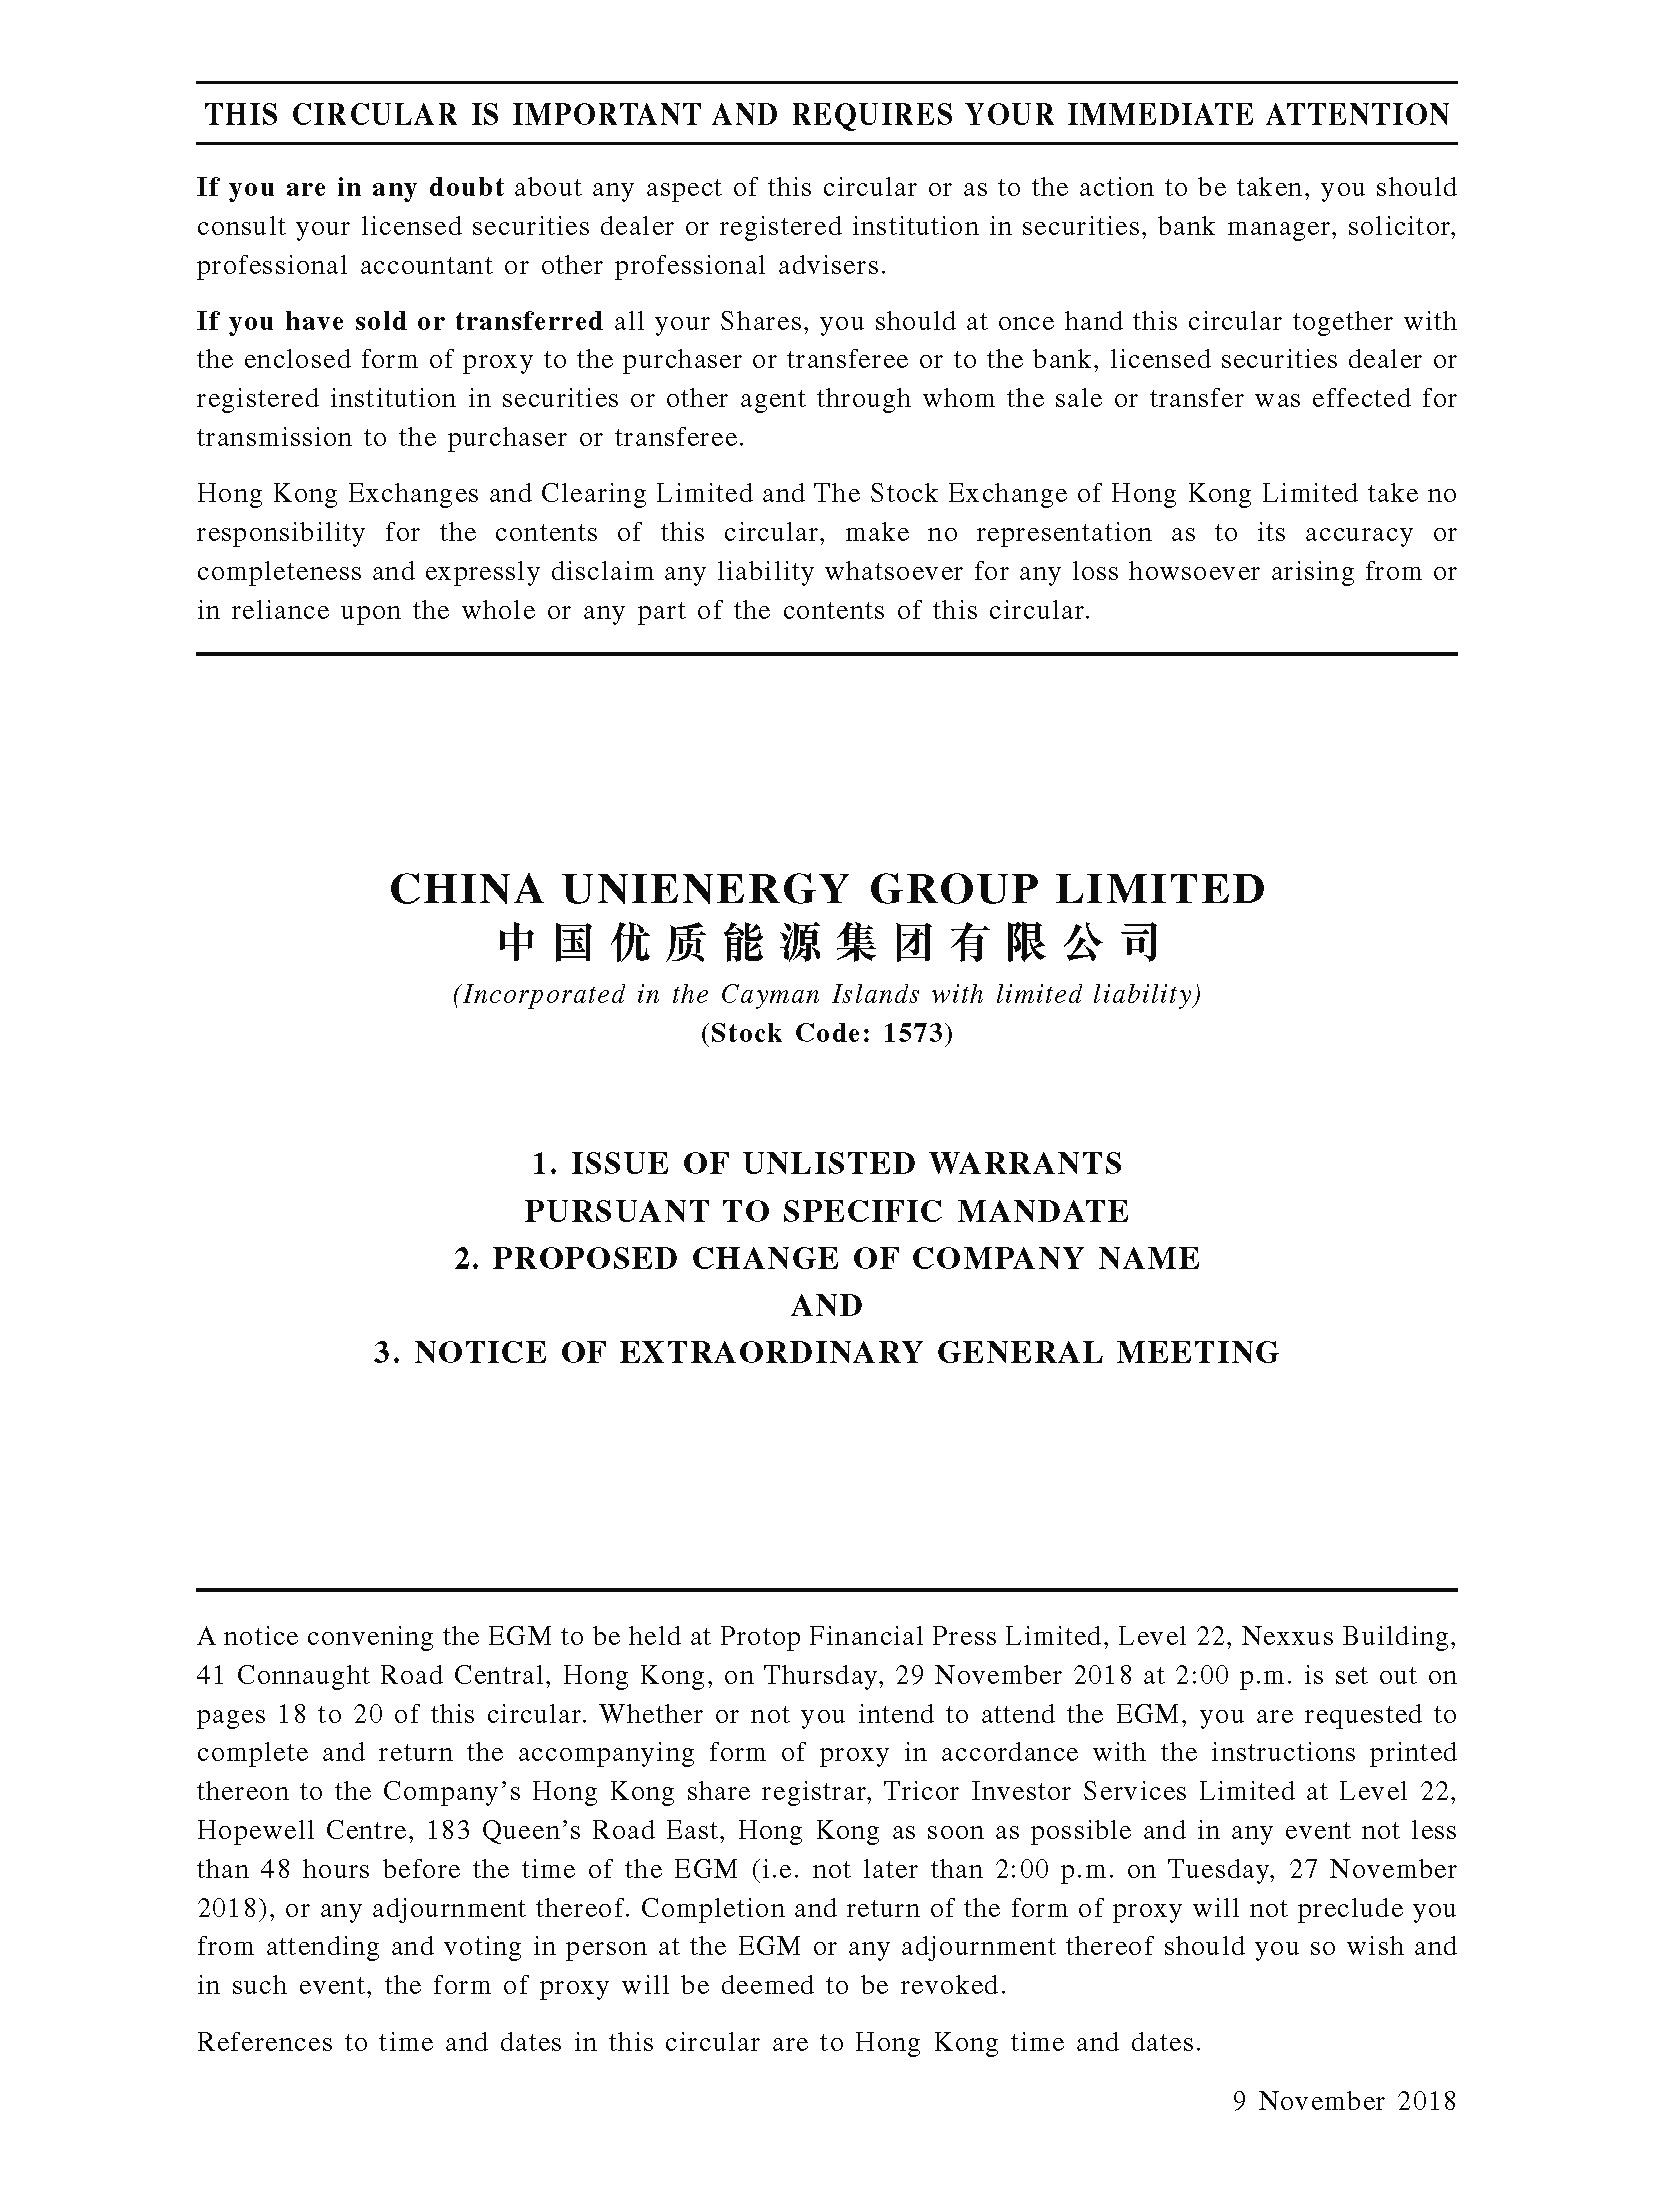 China Unienergy Group Limited